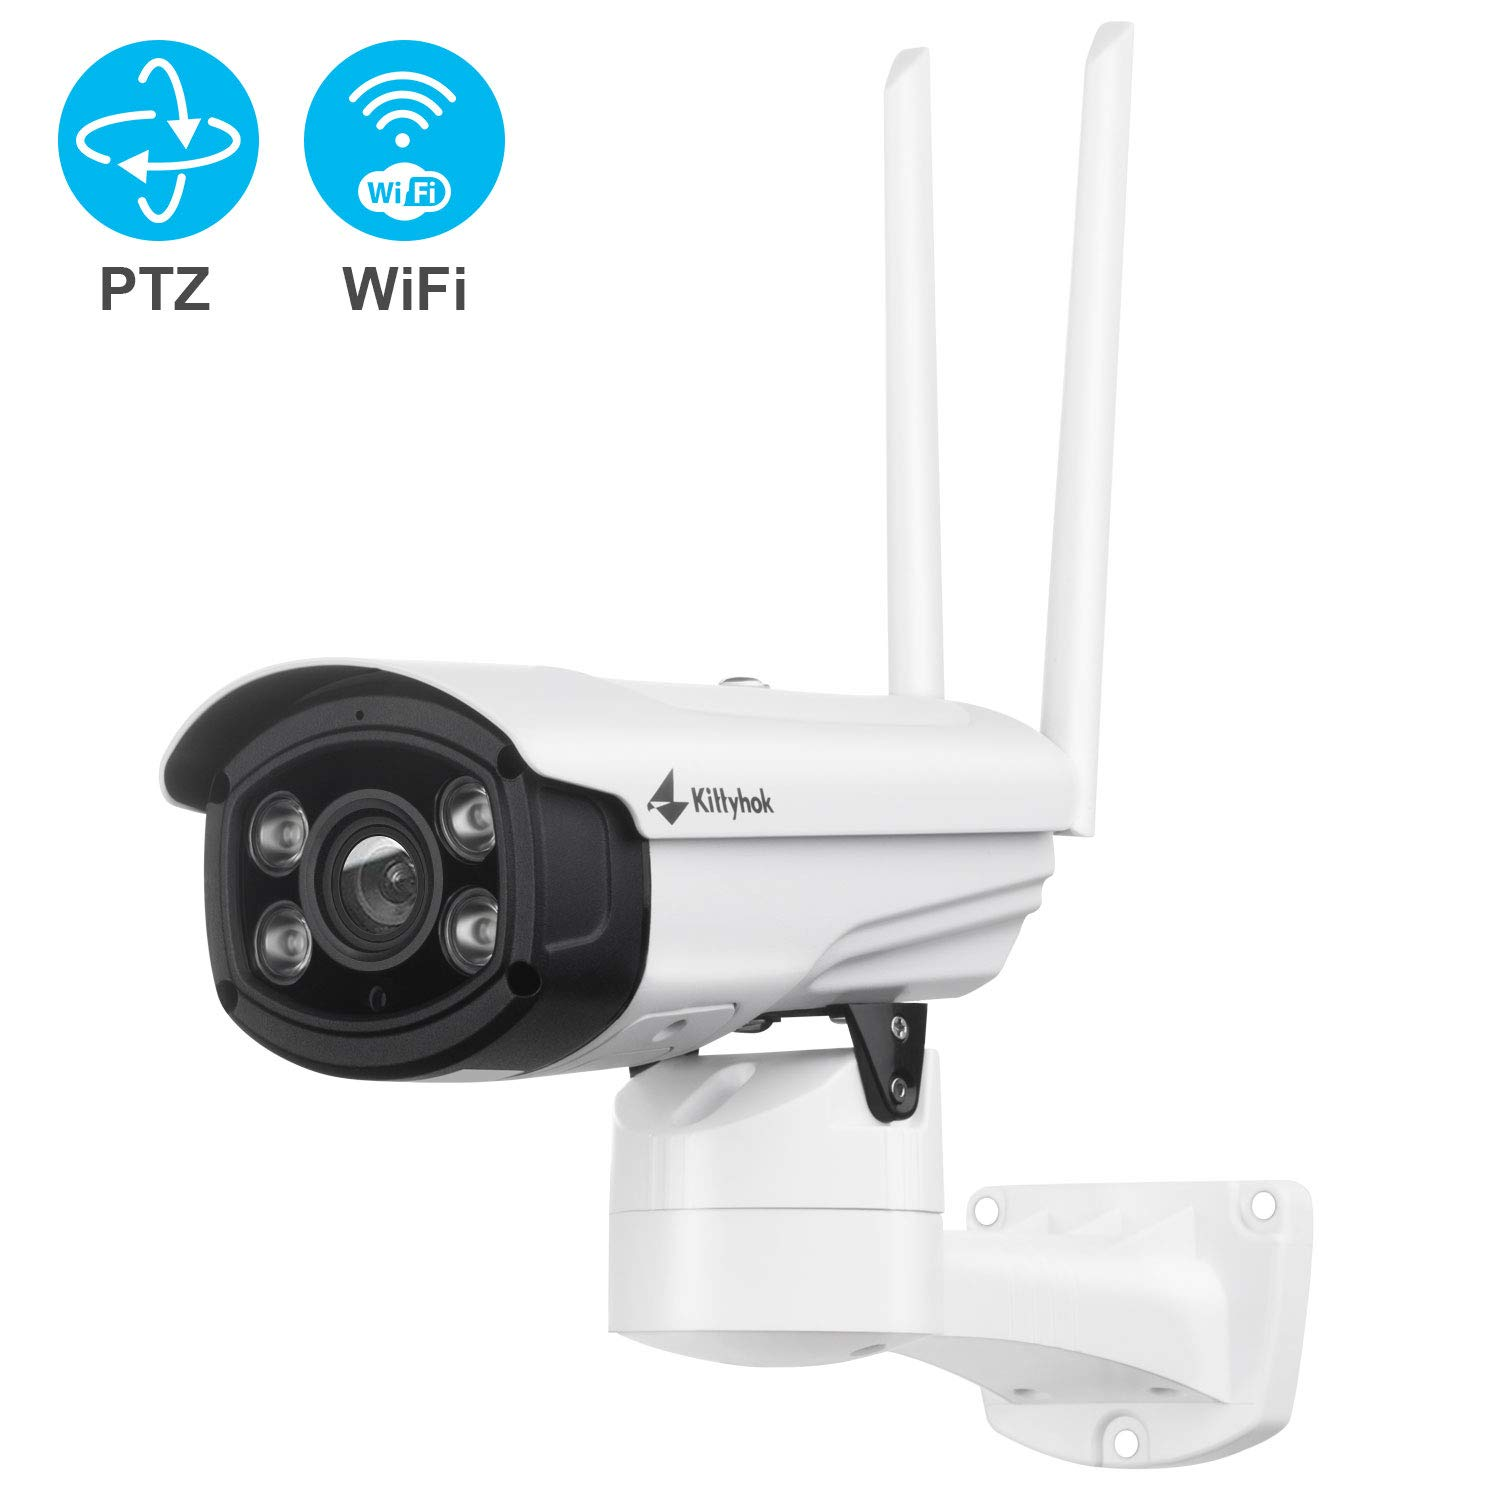 Kittyhok Wireless Security Camera Outdoor, 1080P FHD WiFi PTZ Camera Surveillance Cameras with Spot Light and Siren Alarm, 100ft Color Night Vision, 2-Way Audio (Standalone or Works with NVR)